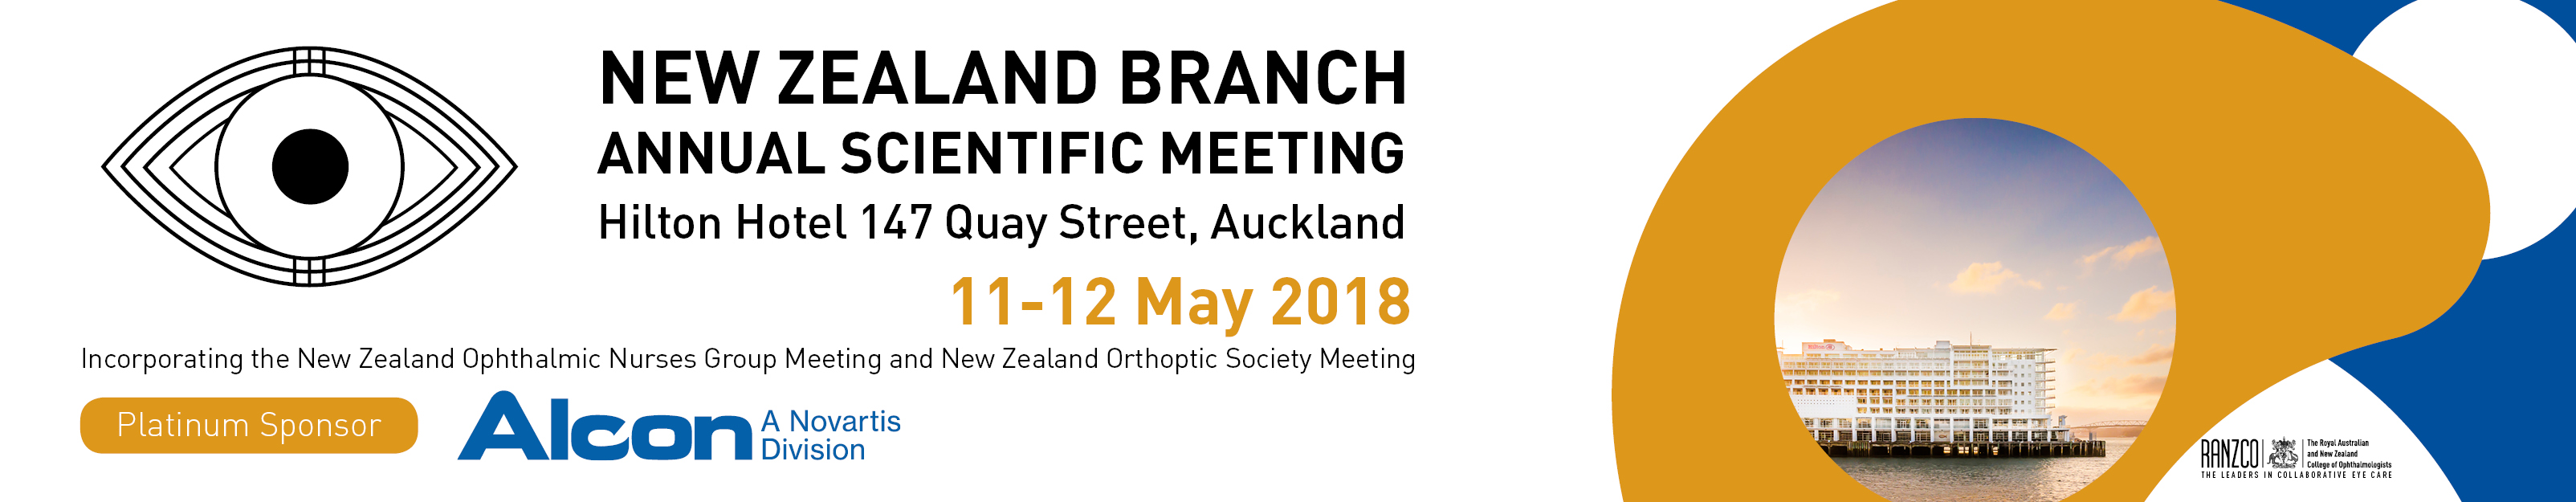 RANZCO New Zealand Branch Annual Scientific Meeting